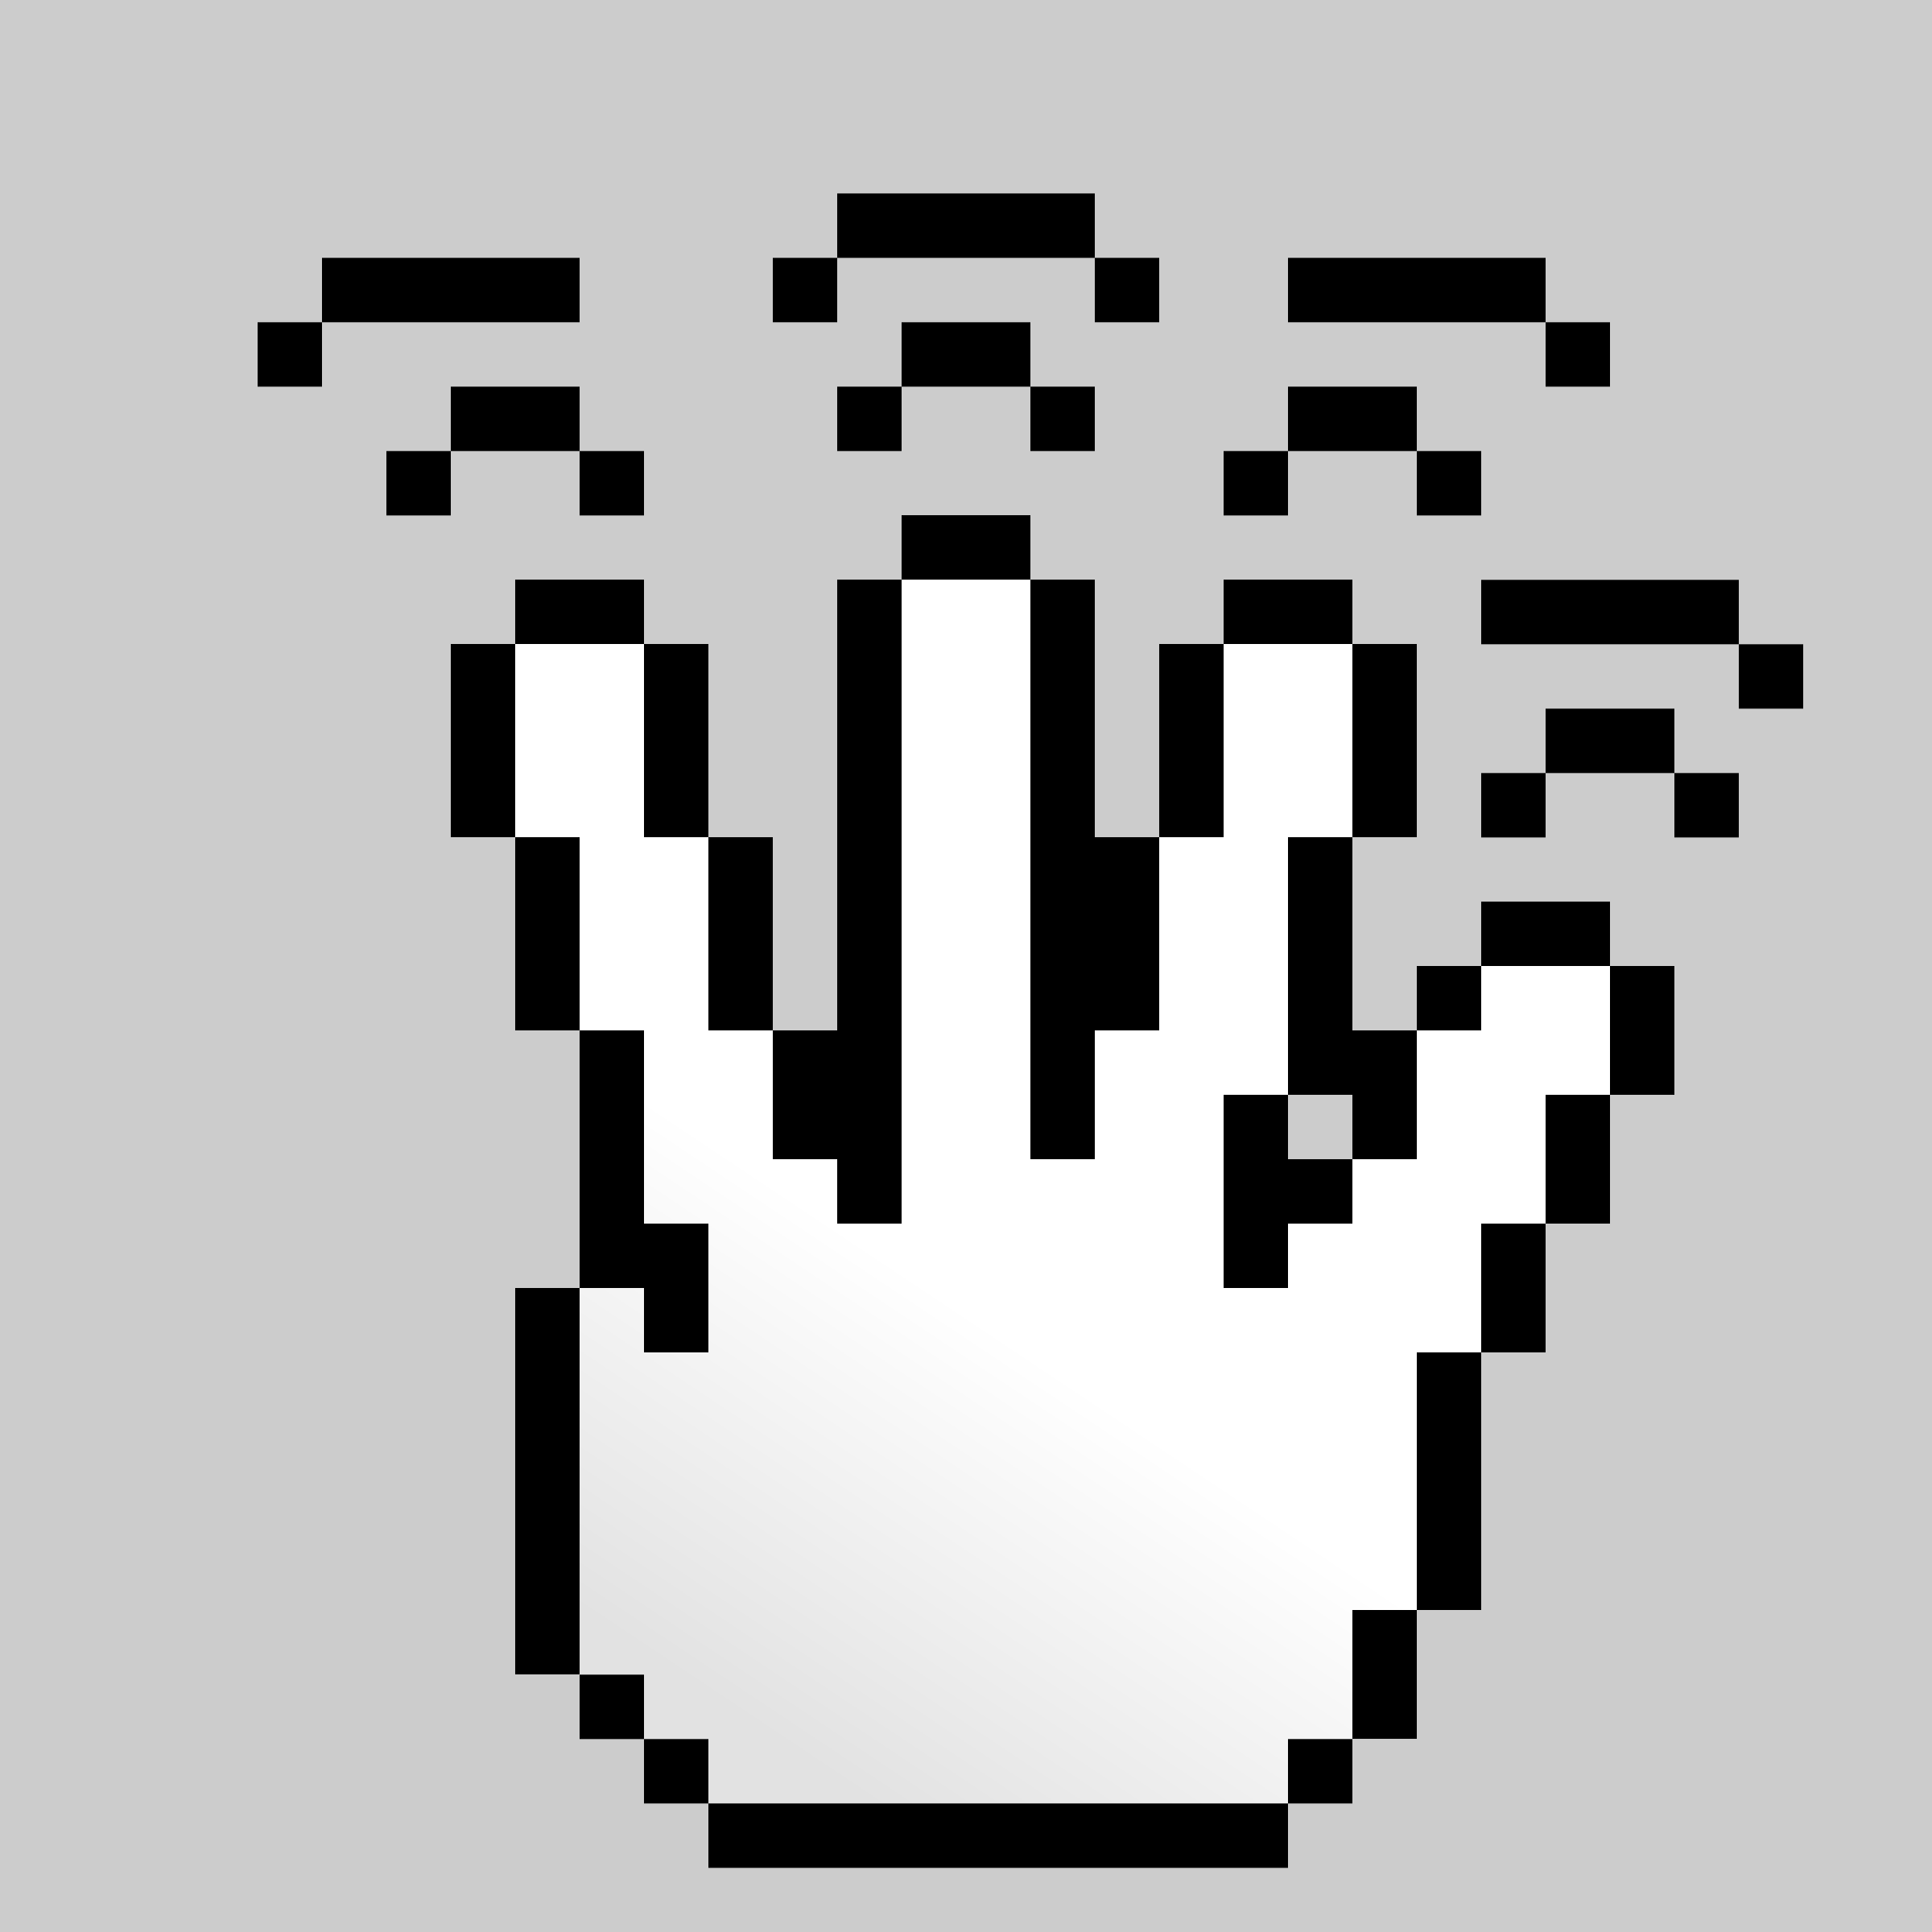 MultiTouch-Interface Pixel-theme 4-fingers-Double-Tap by BenBois